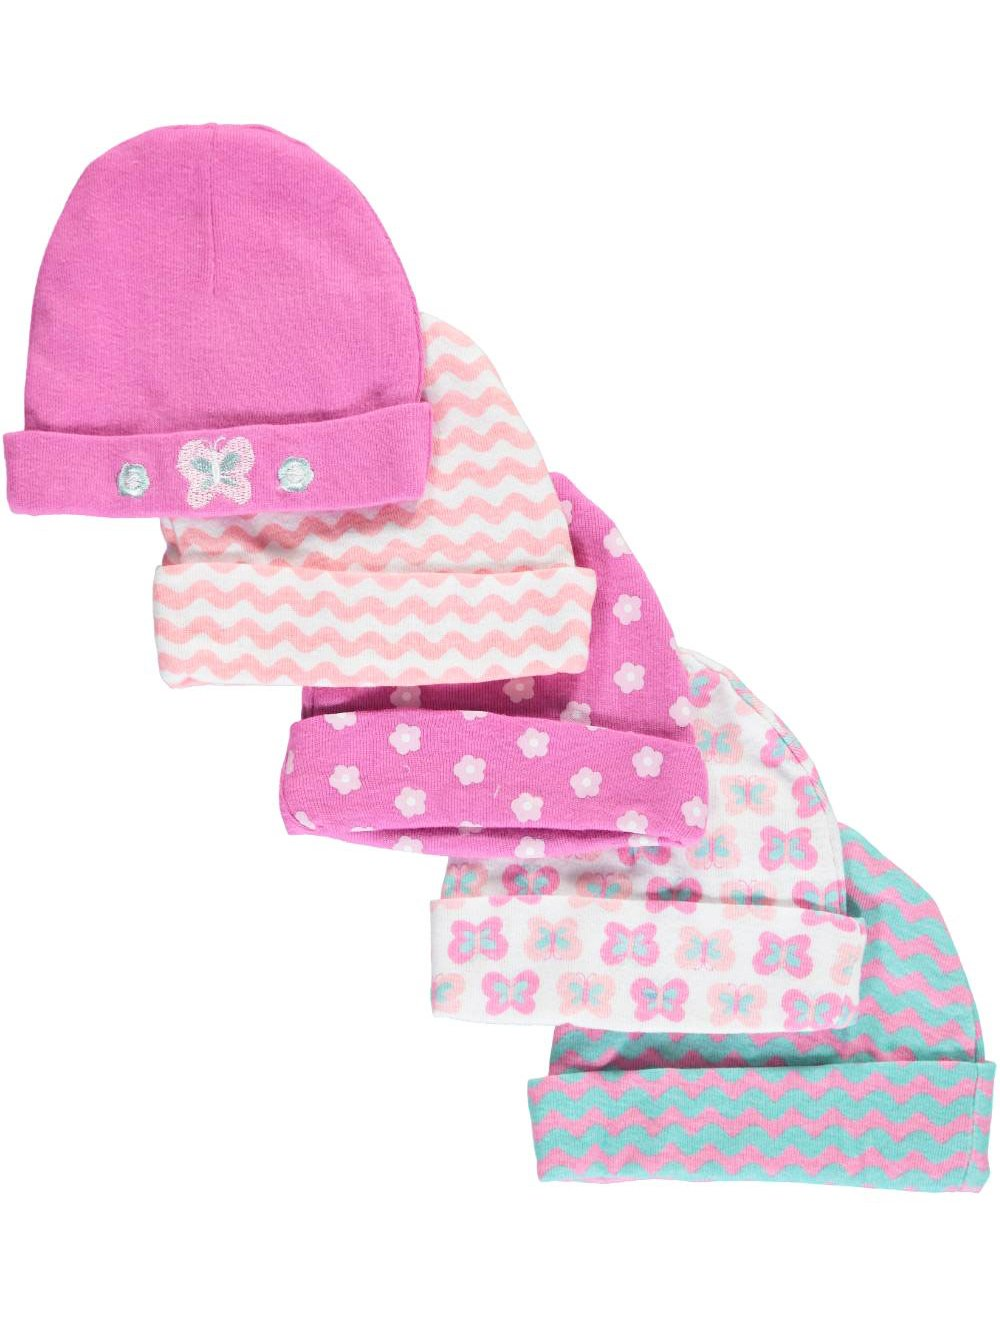 Cribmates Baby Girls' Butterfly Stripes 5-Pack Caps - pink/multi, 0 - 6 months CM41266